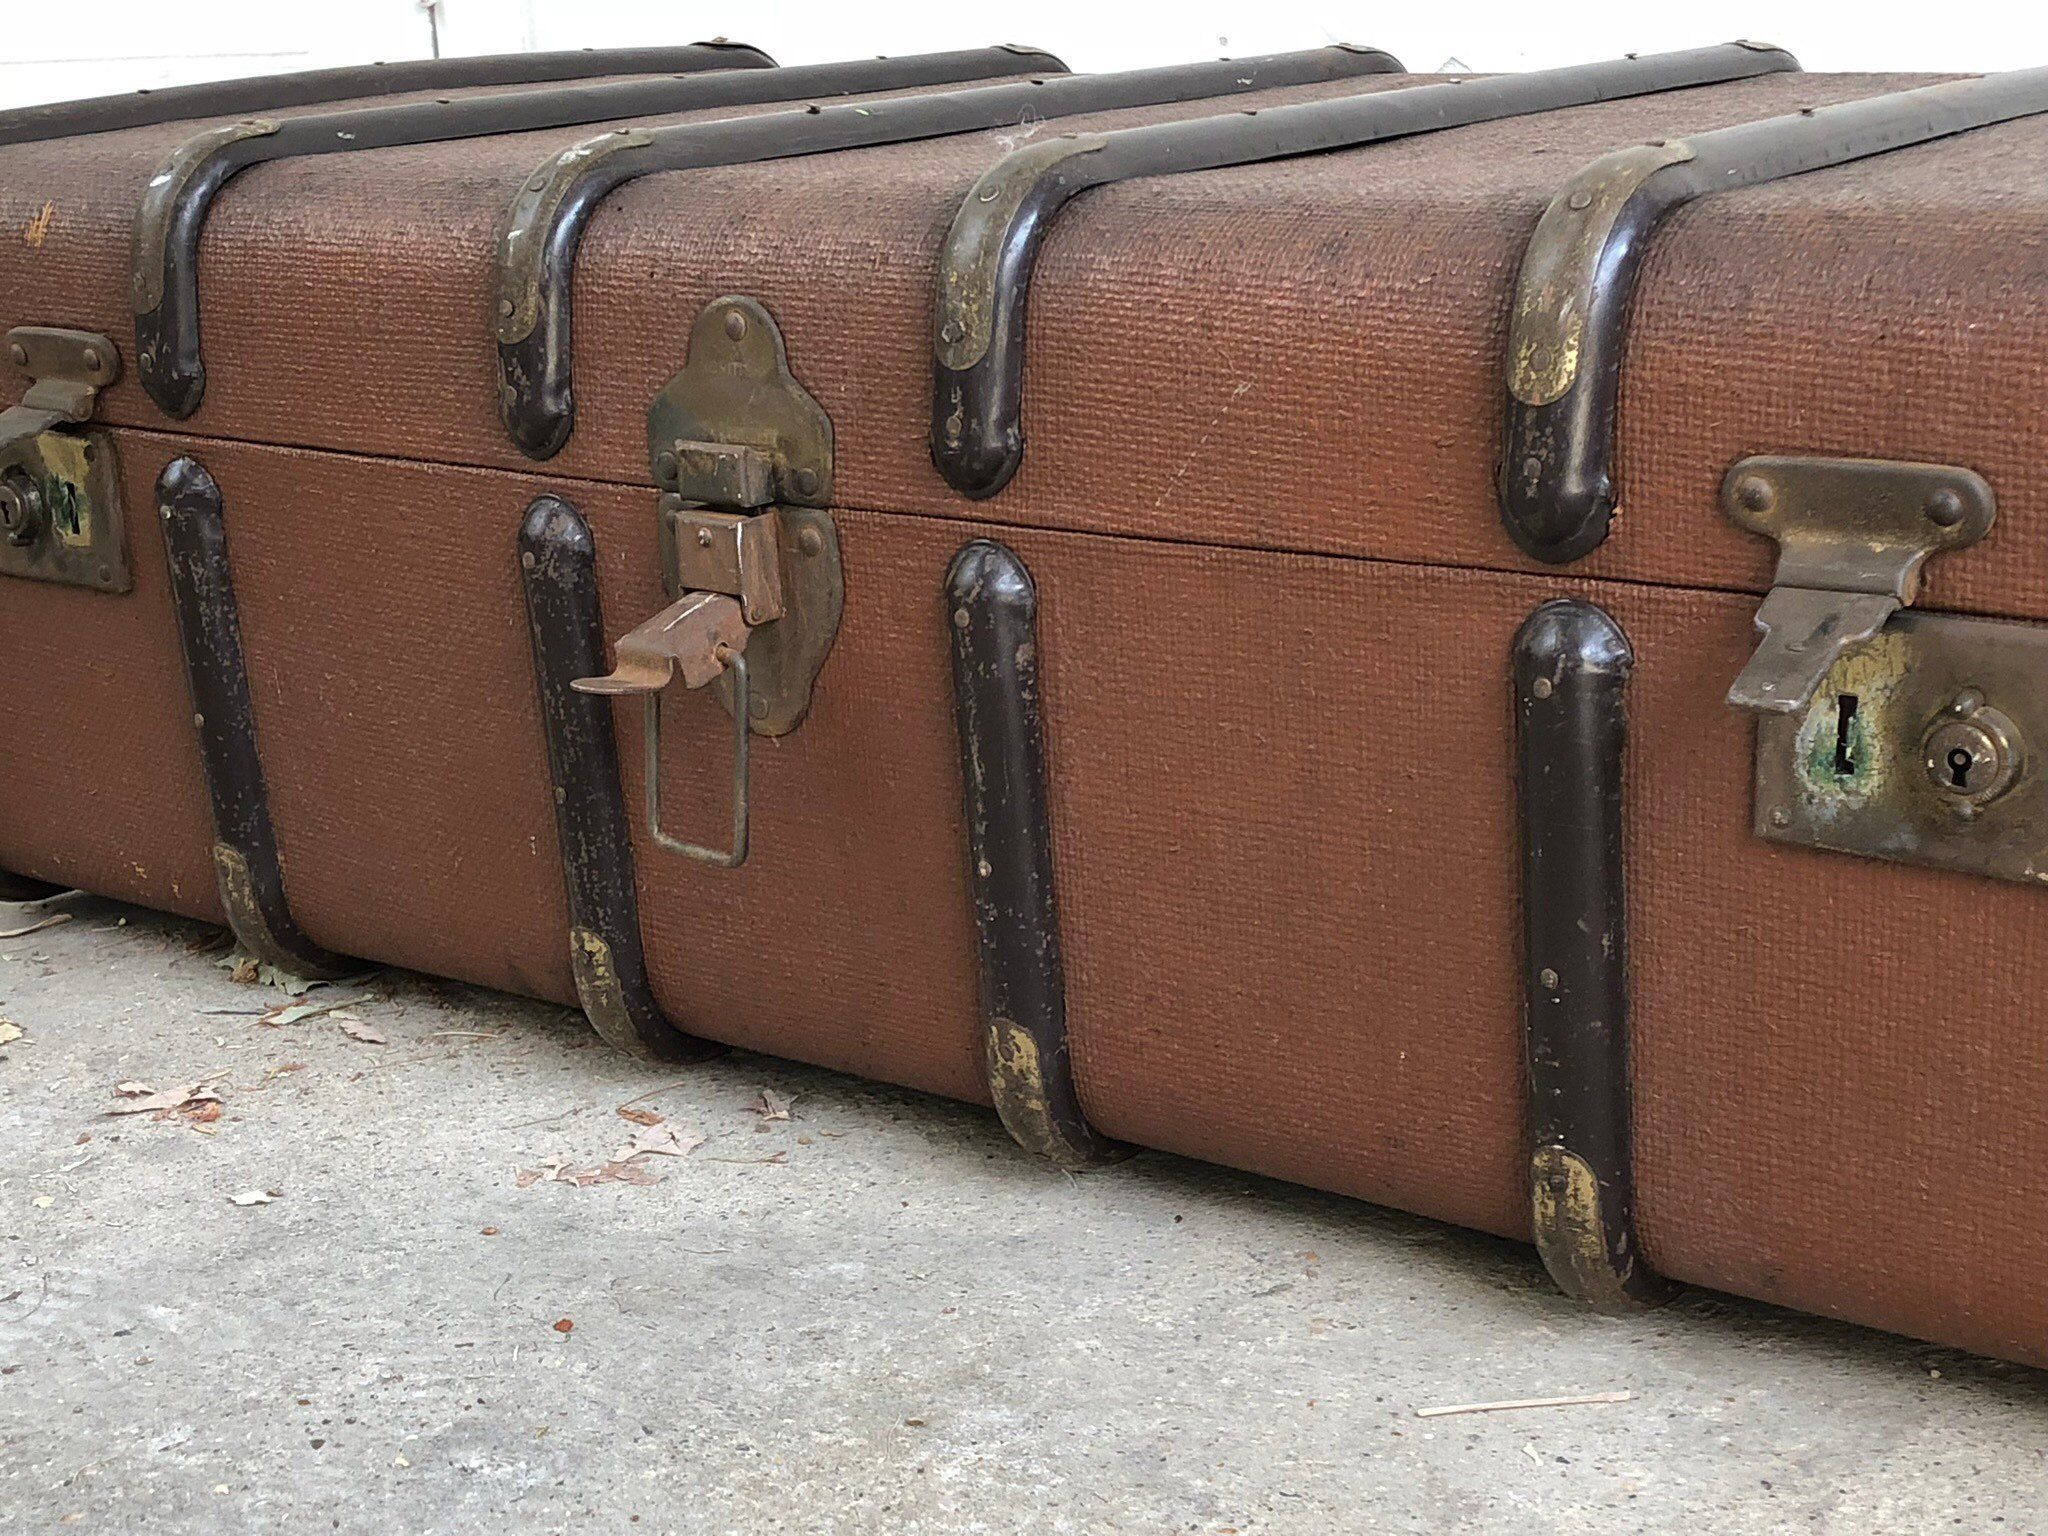 Vintage Steamer Trunk Coffee Table Storage Vintage Steamer Trunk